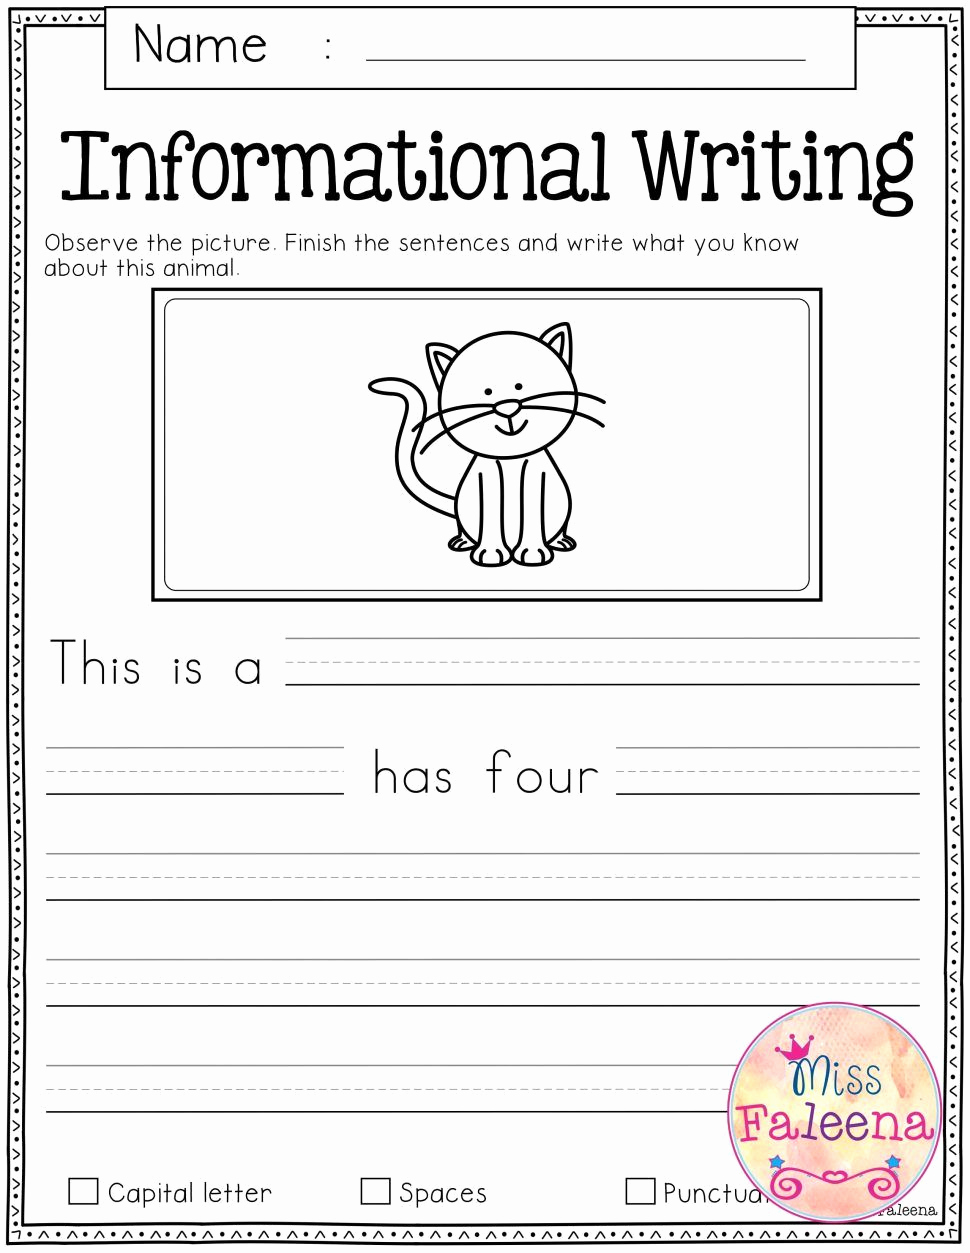 Worksheets for First Grade Writing Fresh Printable Writing Worksheets for 1st Grade